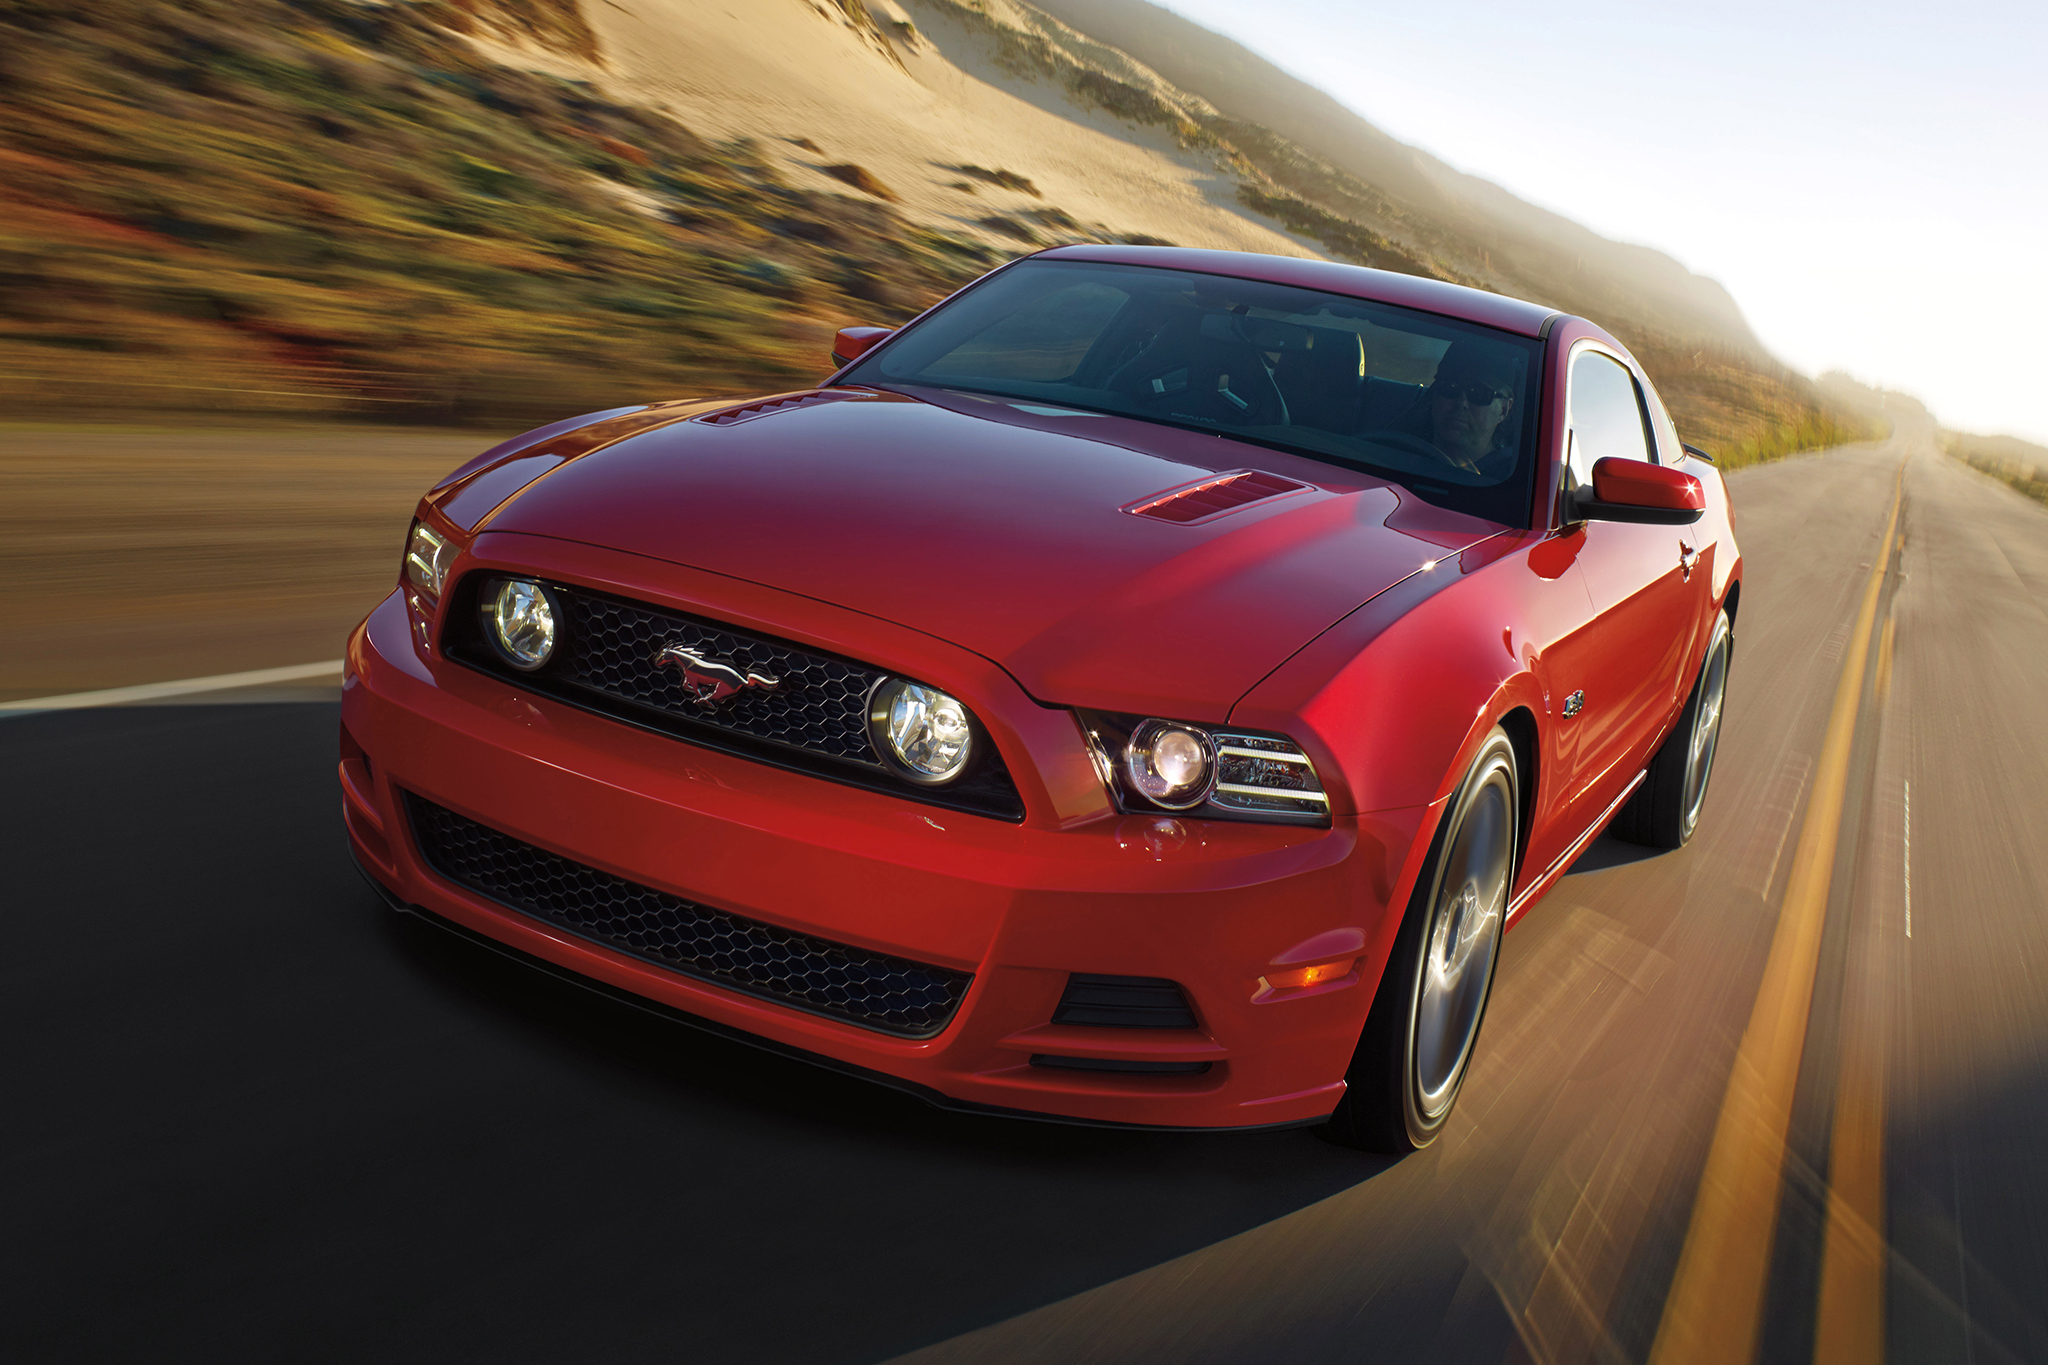 2014 Ford Mustang #3